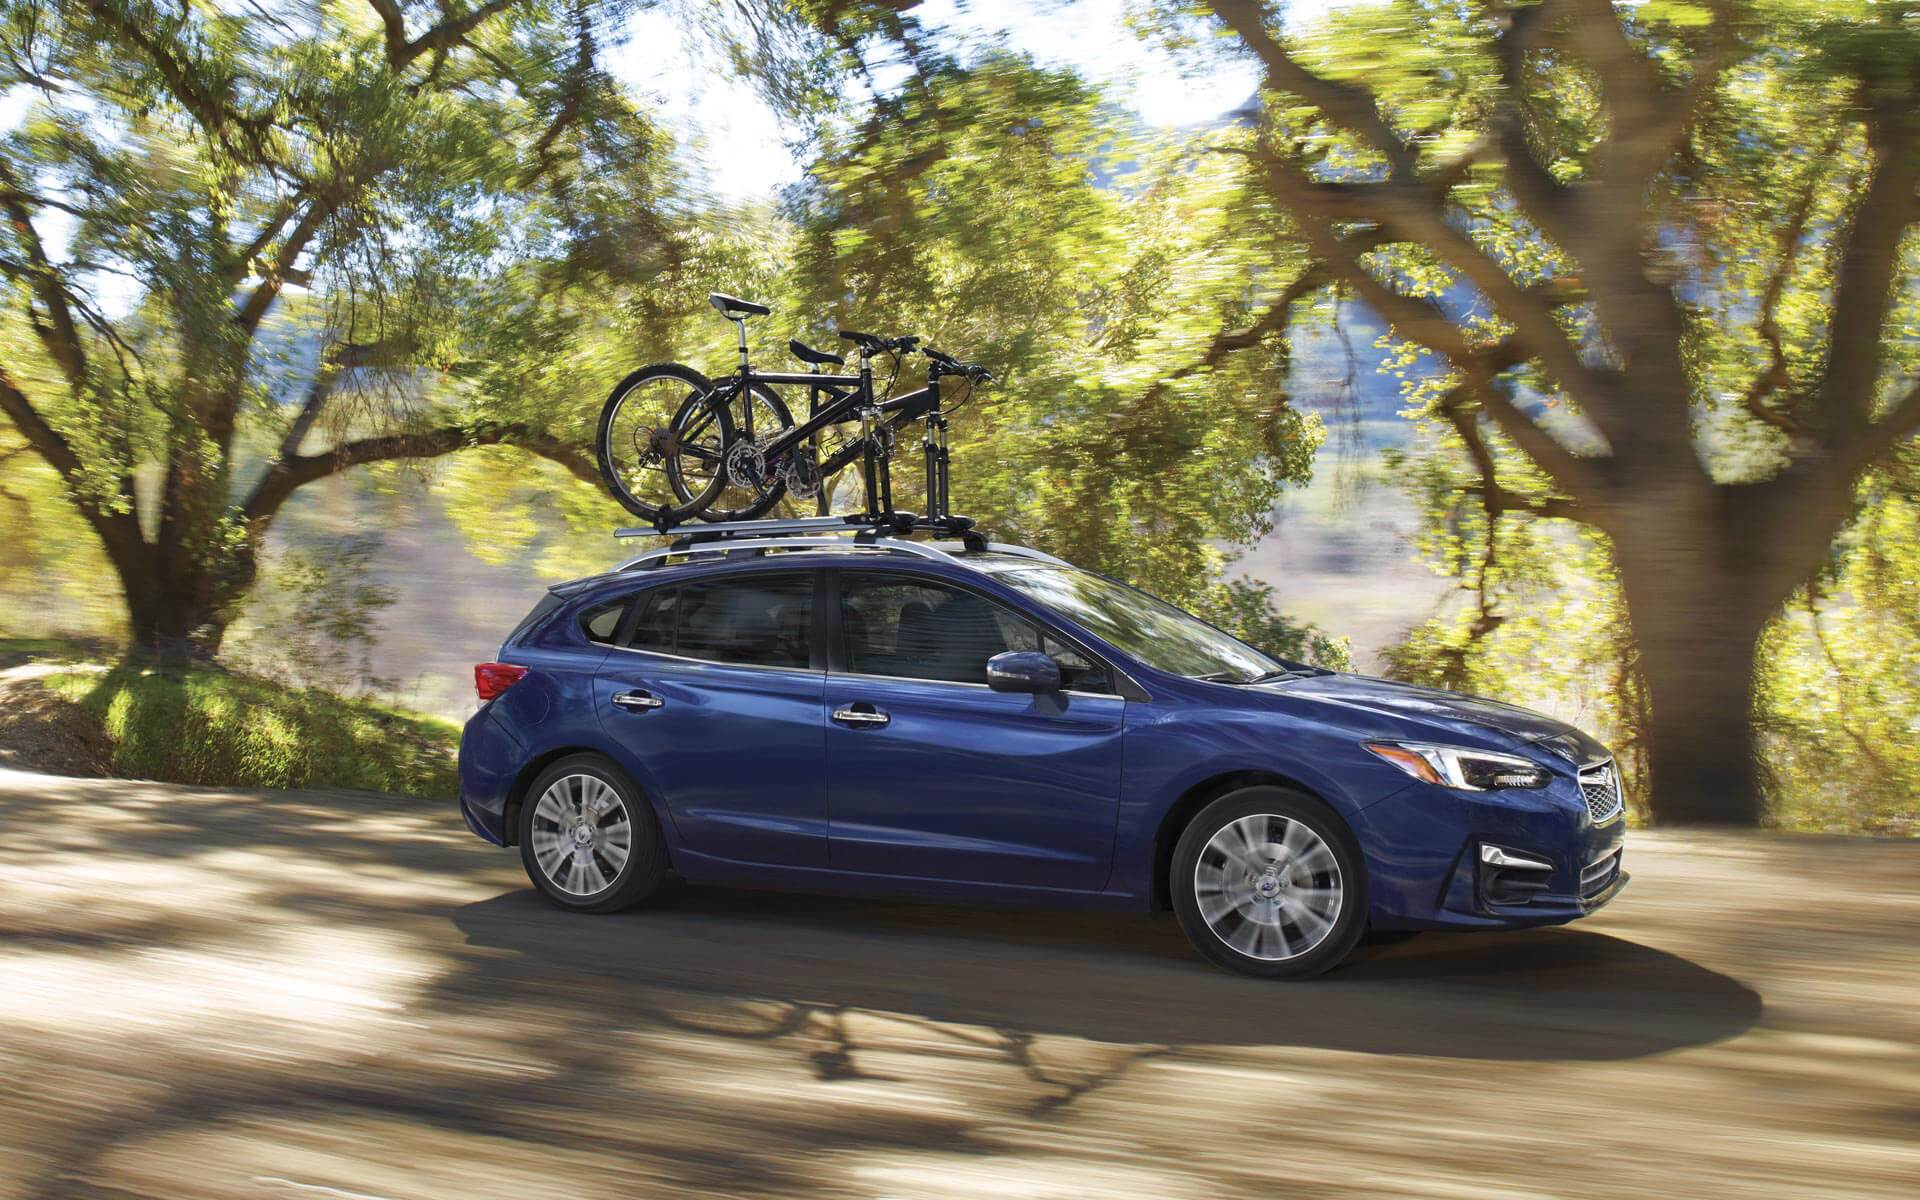 Used Subaru Impreza for Sale in Boulder CO - 2018 Subaru Impreza's OVERVIEW